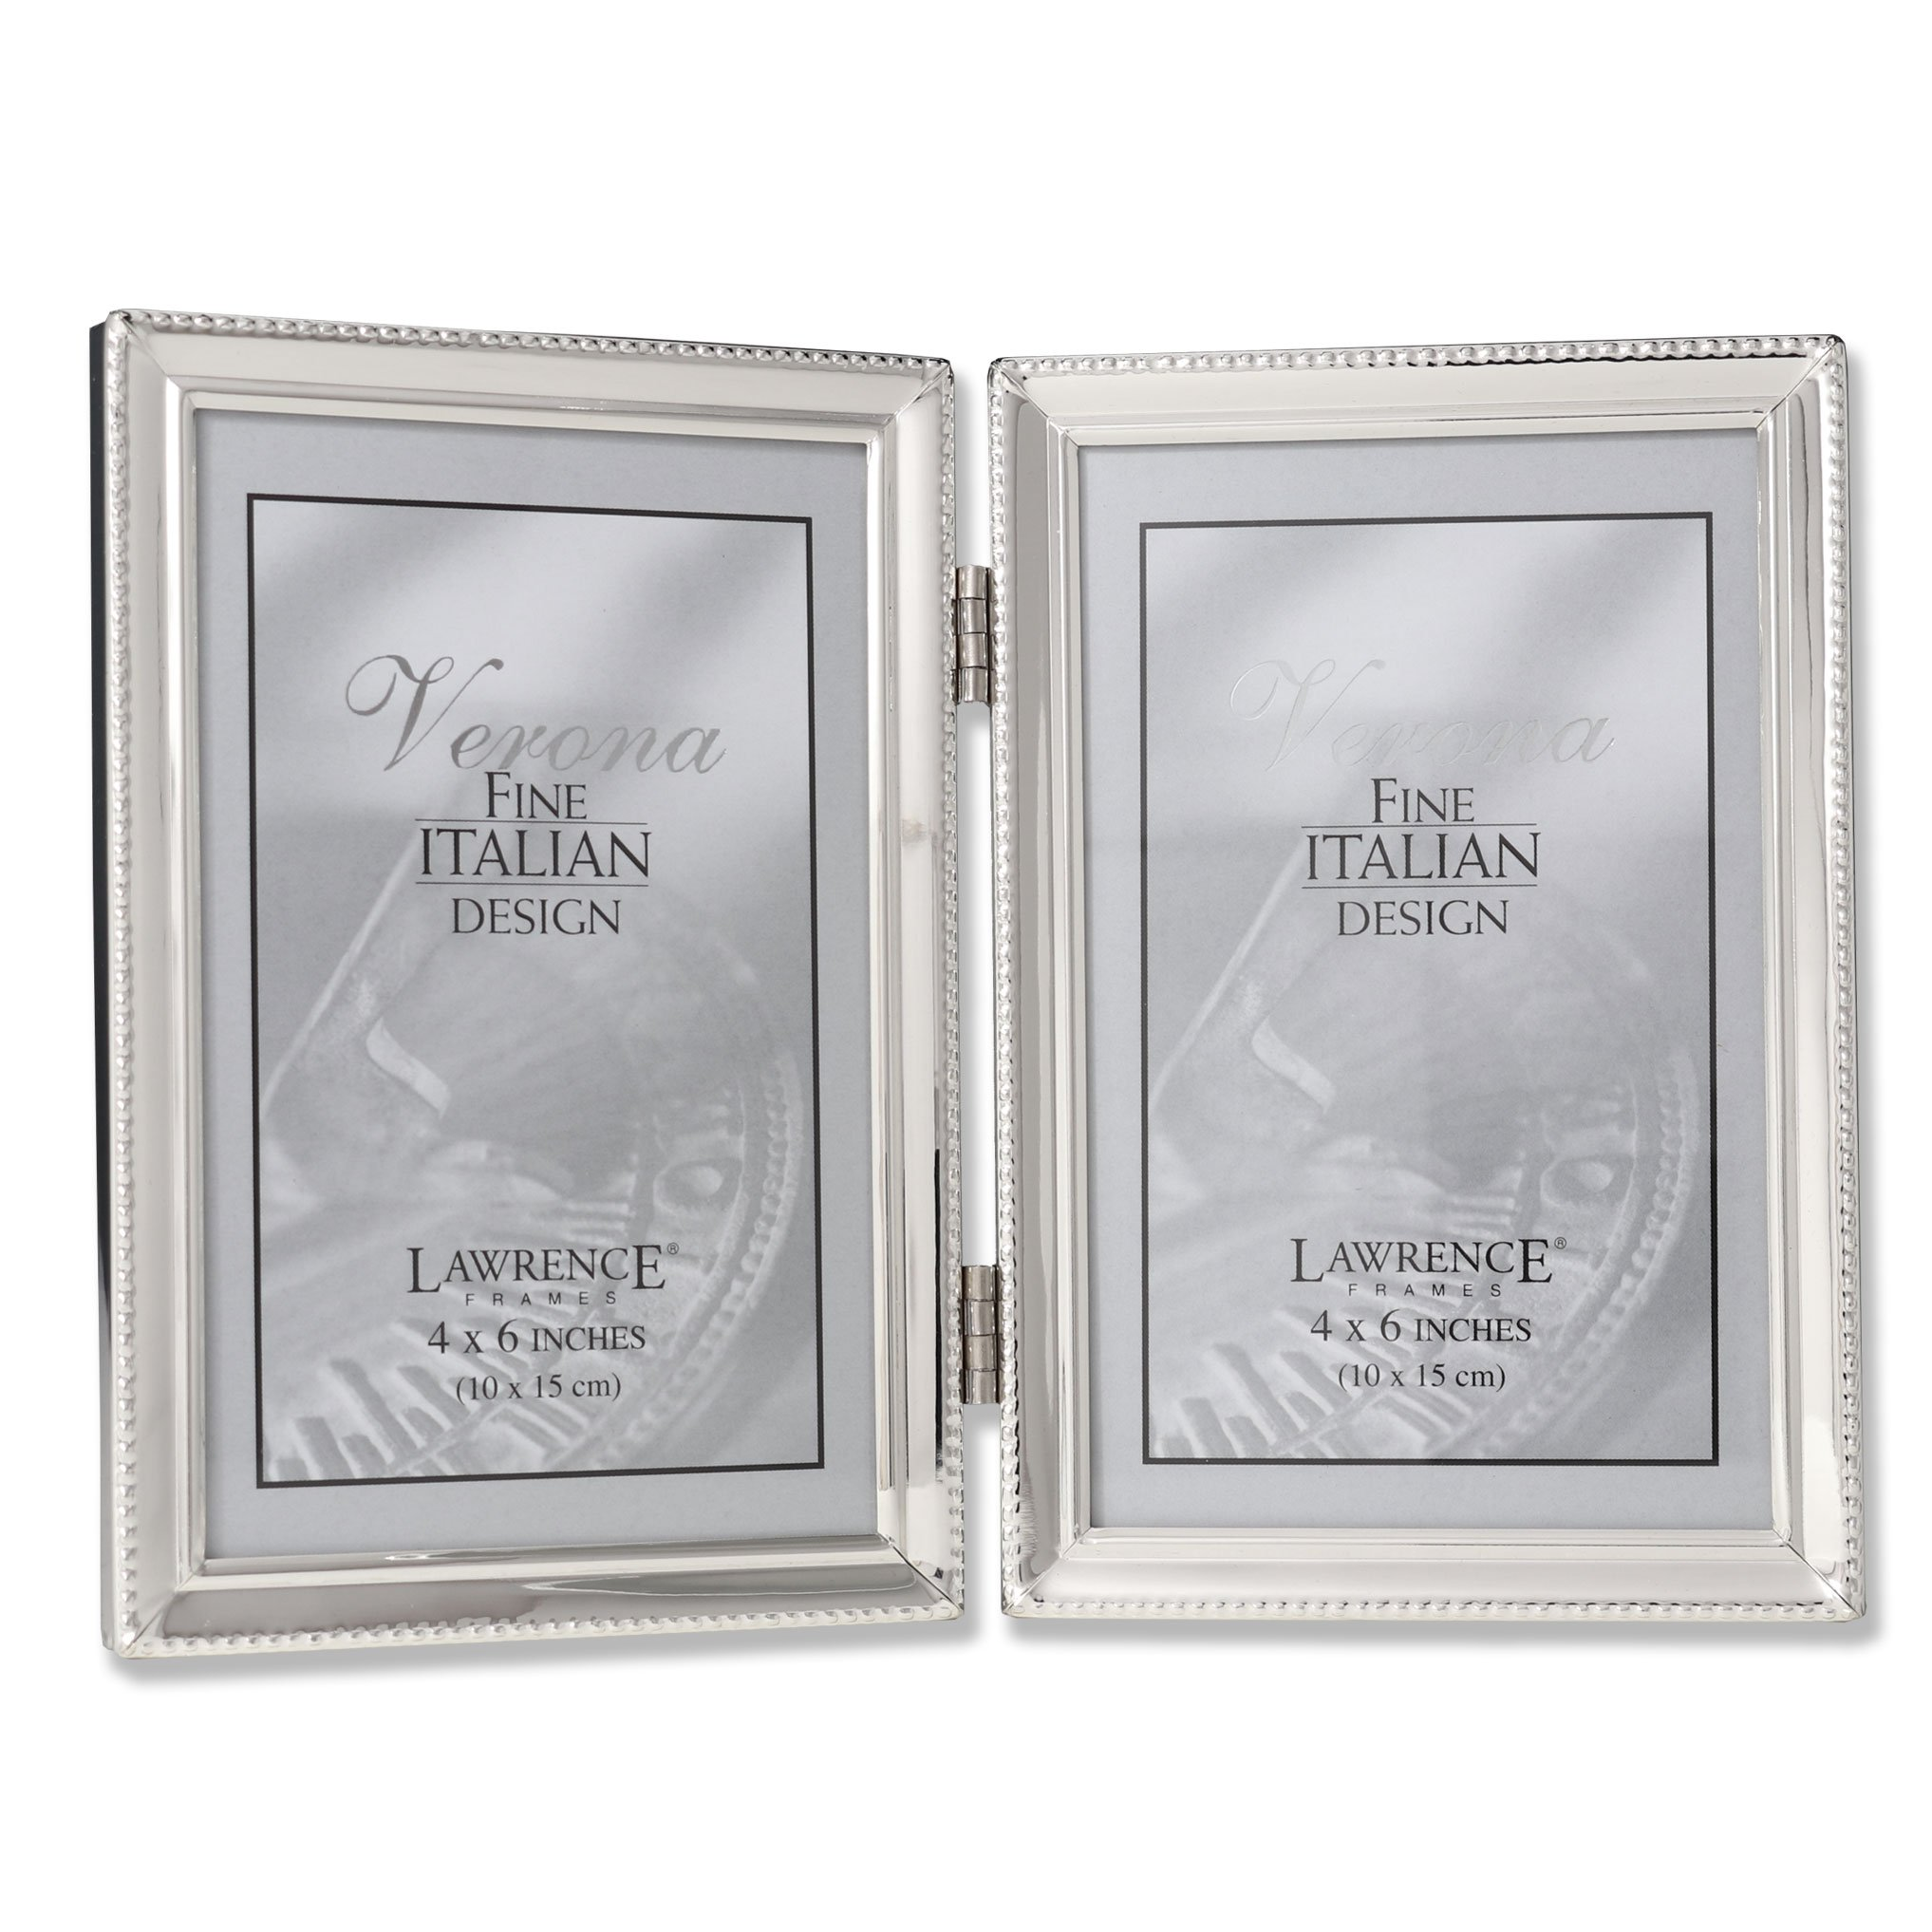 Lawrence Frames Polished Silver Plate 4x6 Hinged Double Picture Frame - Bead Border Design